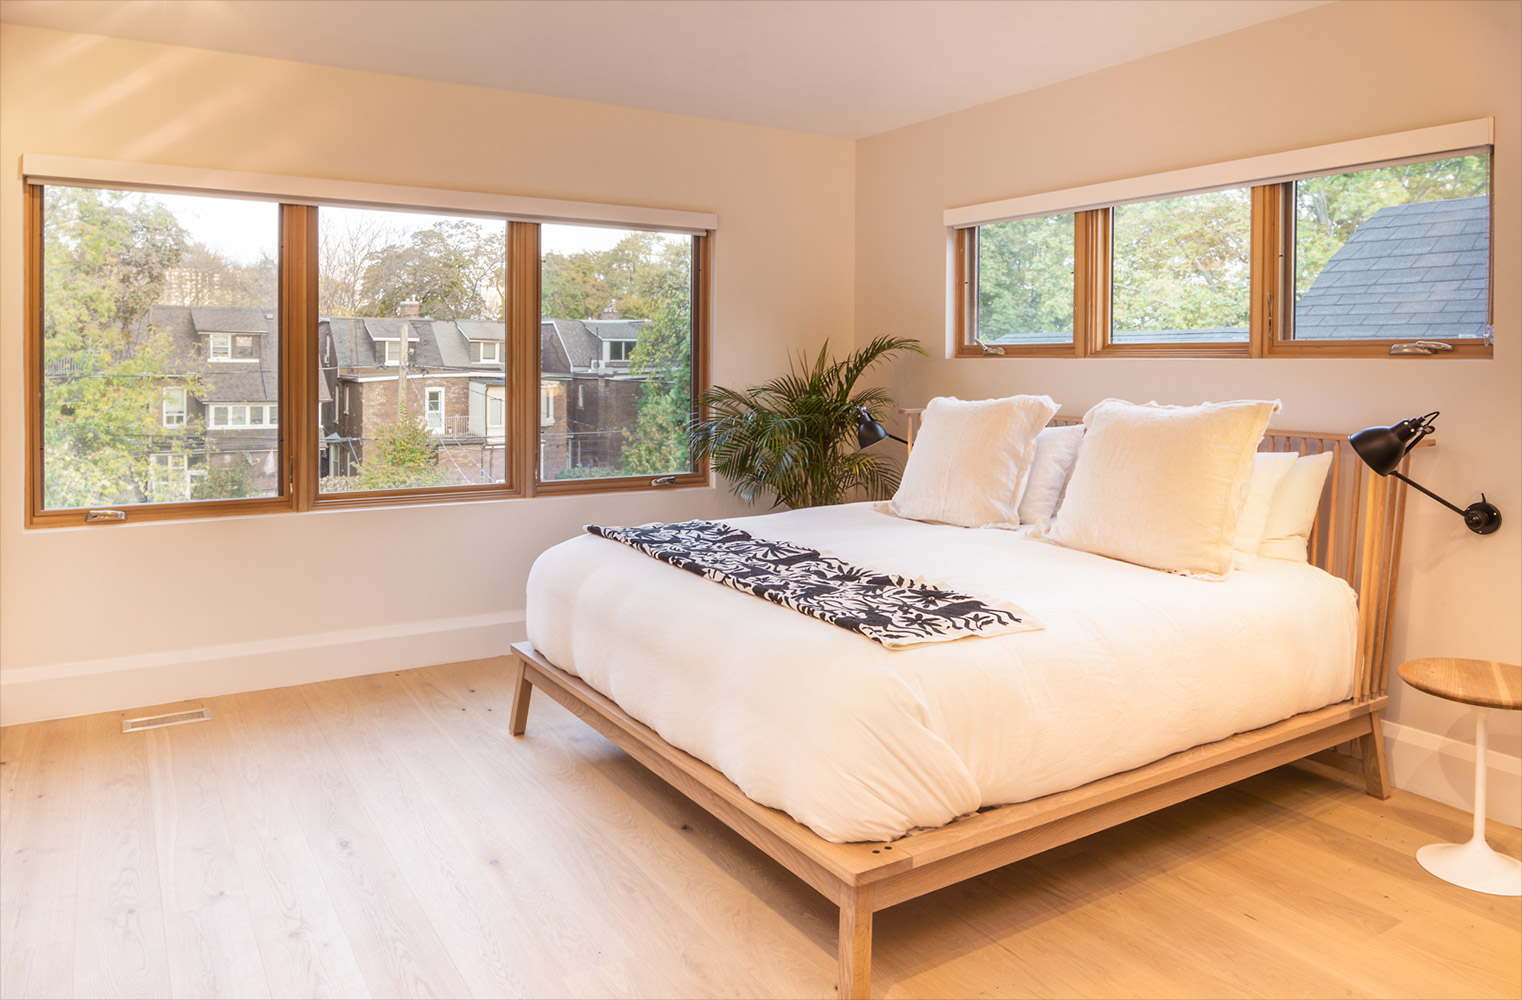 Master bedroom with white oak ribbon windows and custom made white oak bed frame and floors